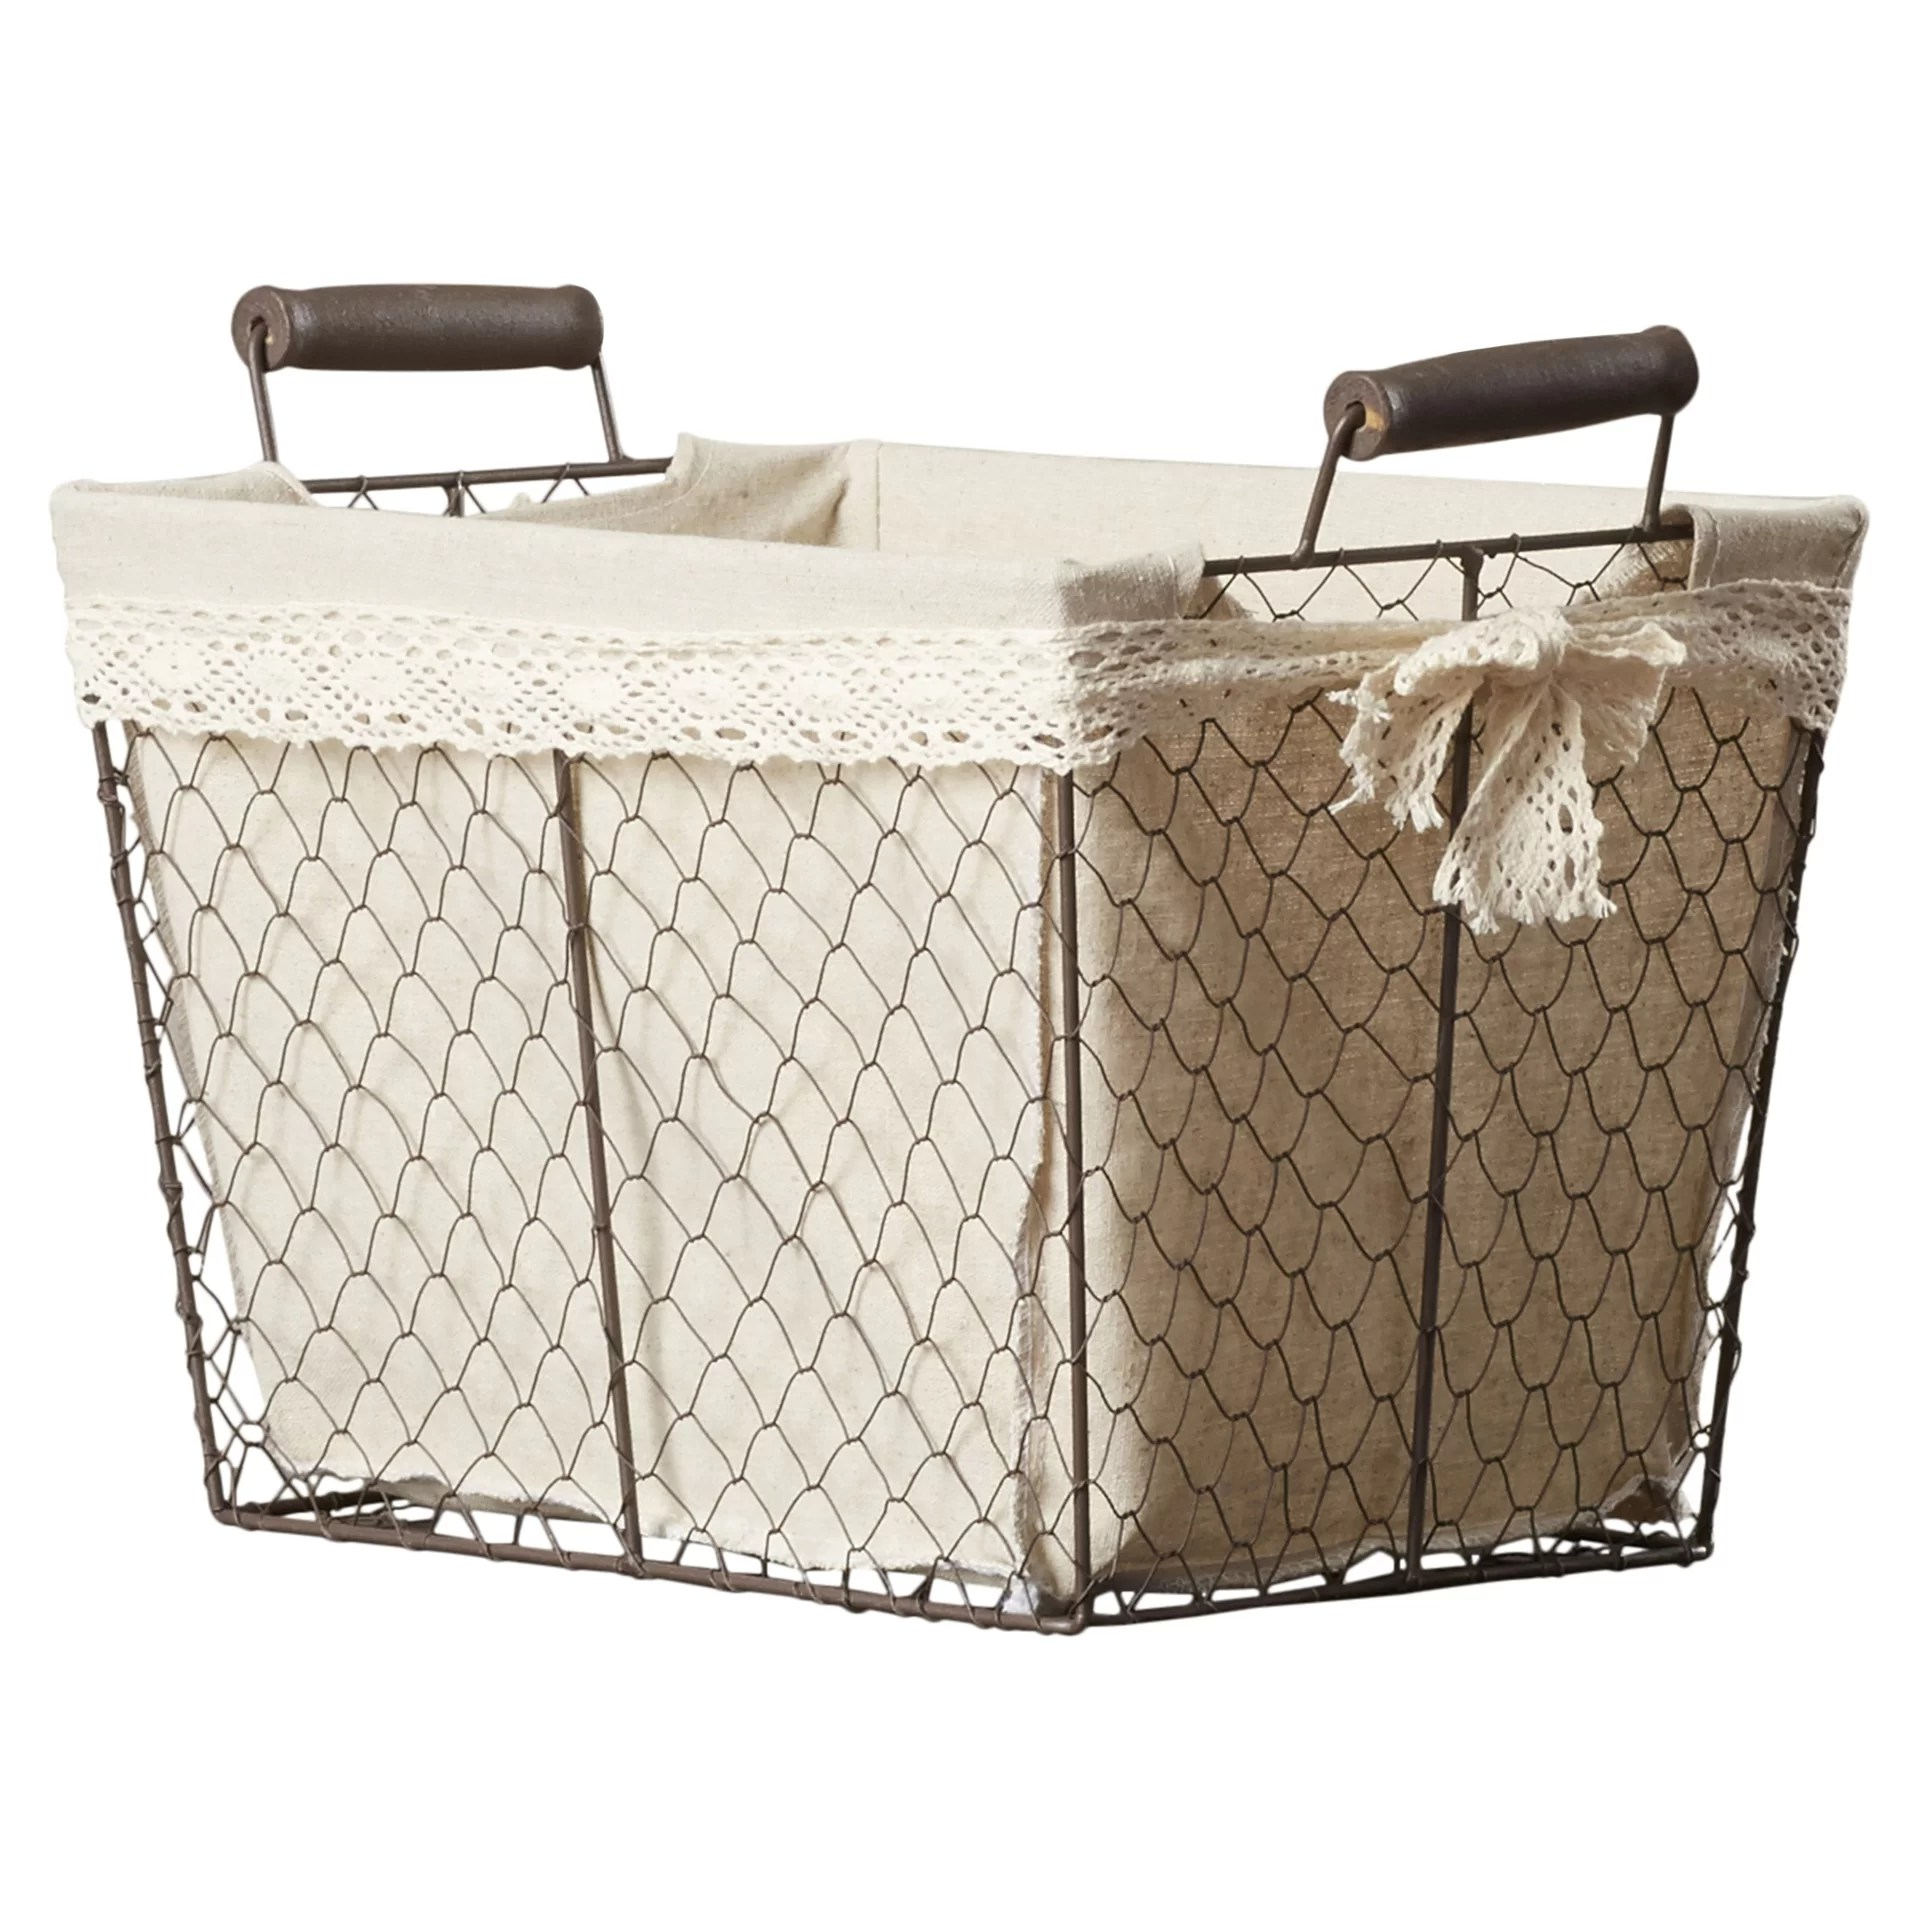 August Grove 3 Piece Rectangular Lined Wire Storage Basket